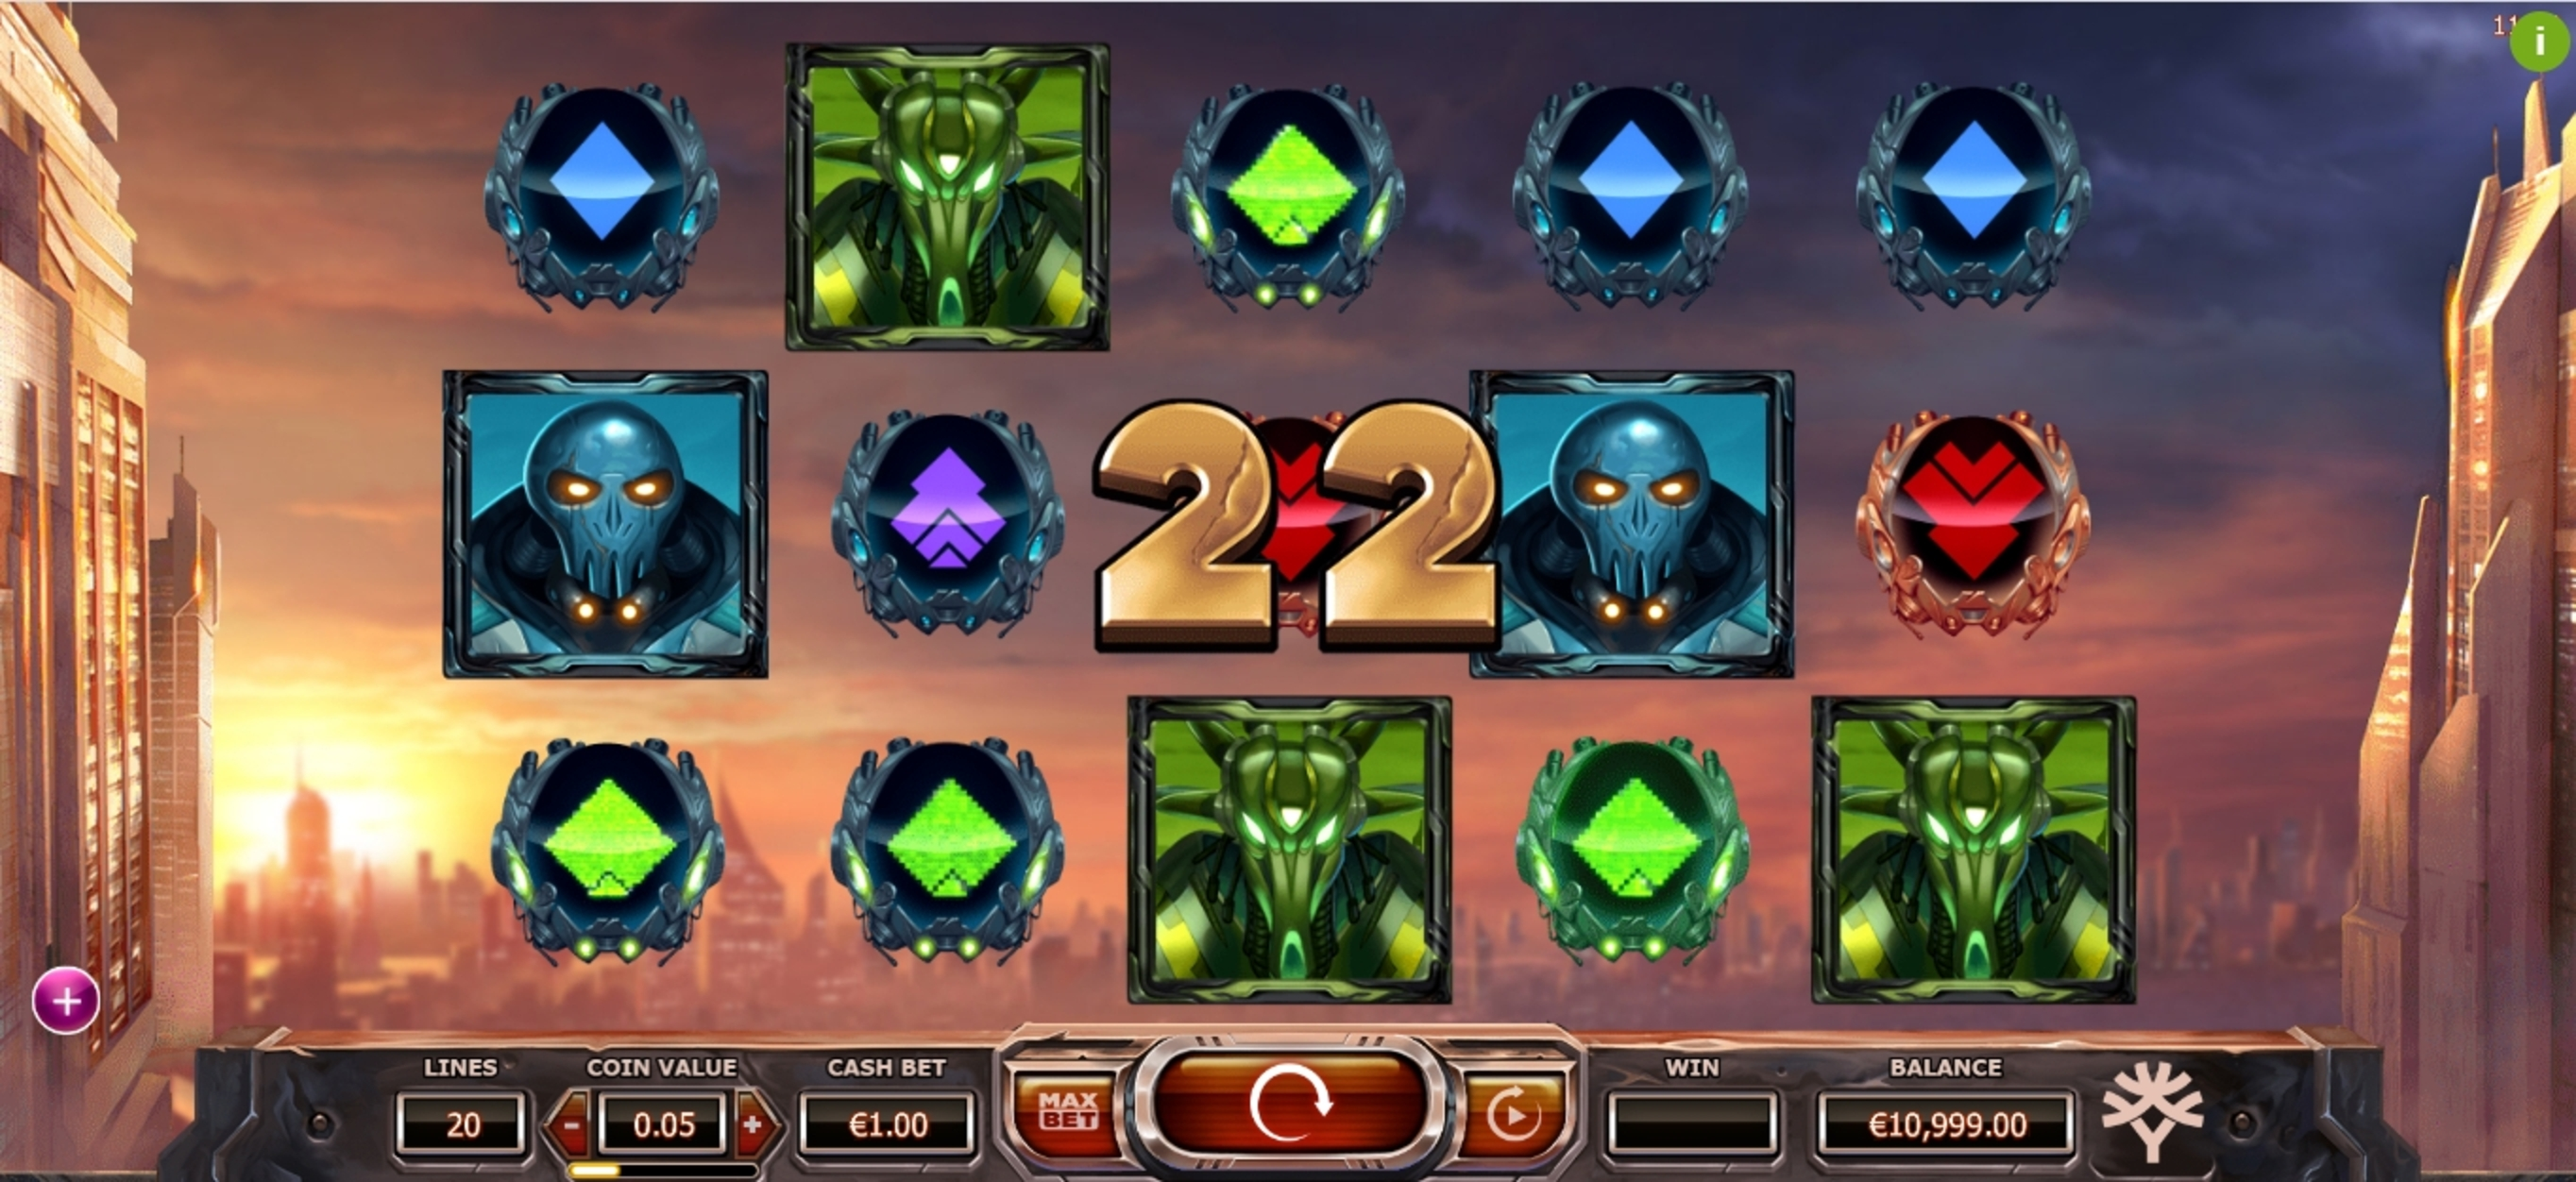 Win Money in Super Heroes Free Slot Game by Yggdrasil